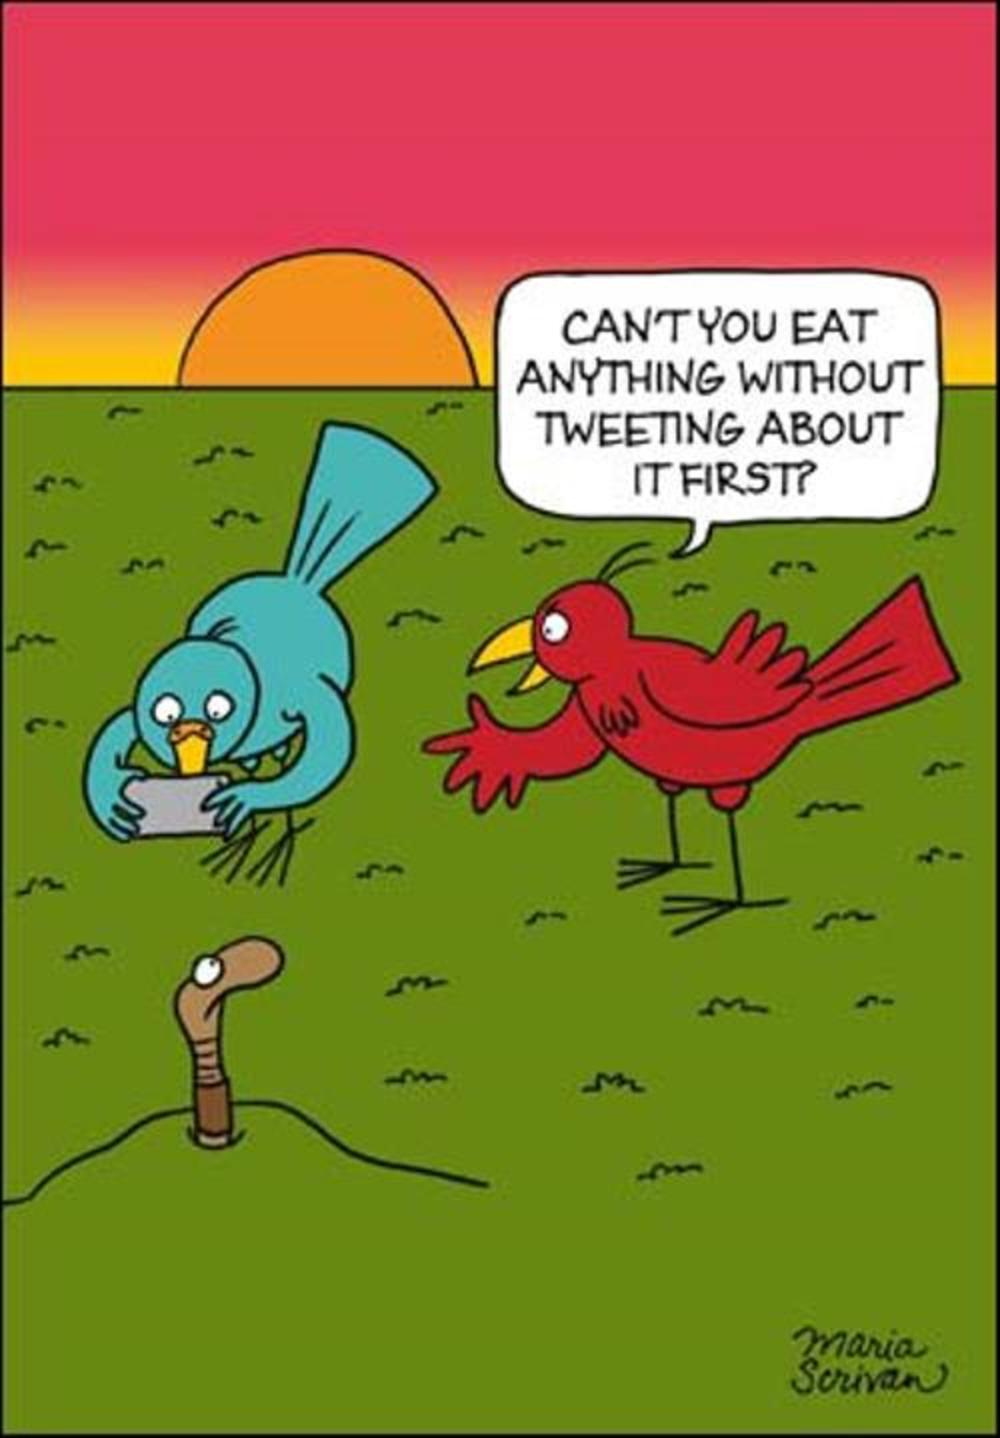 Eat Without Tweeting First Funny Berger & Wyse Card